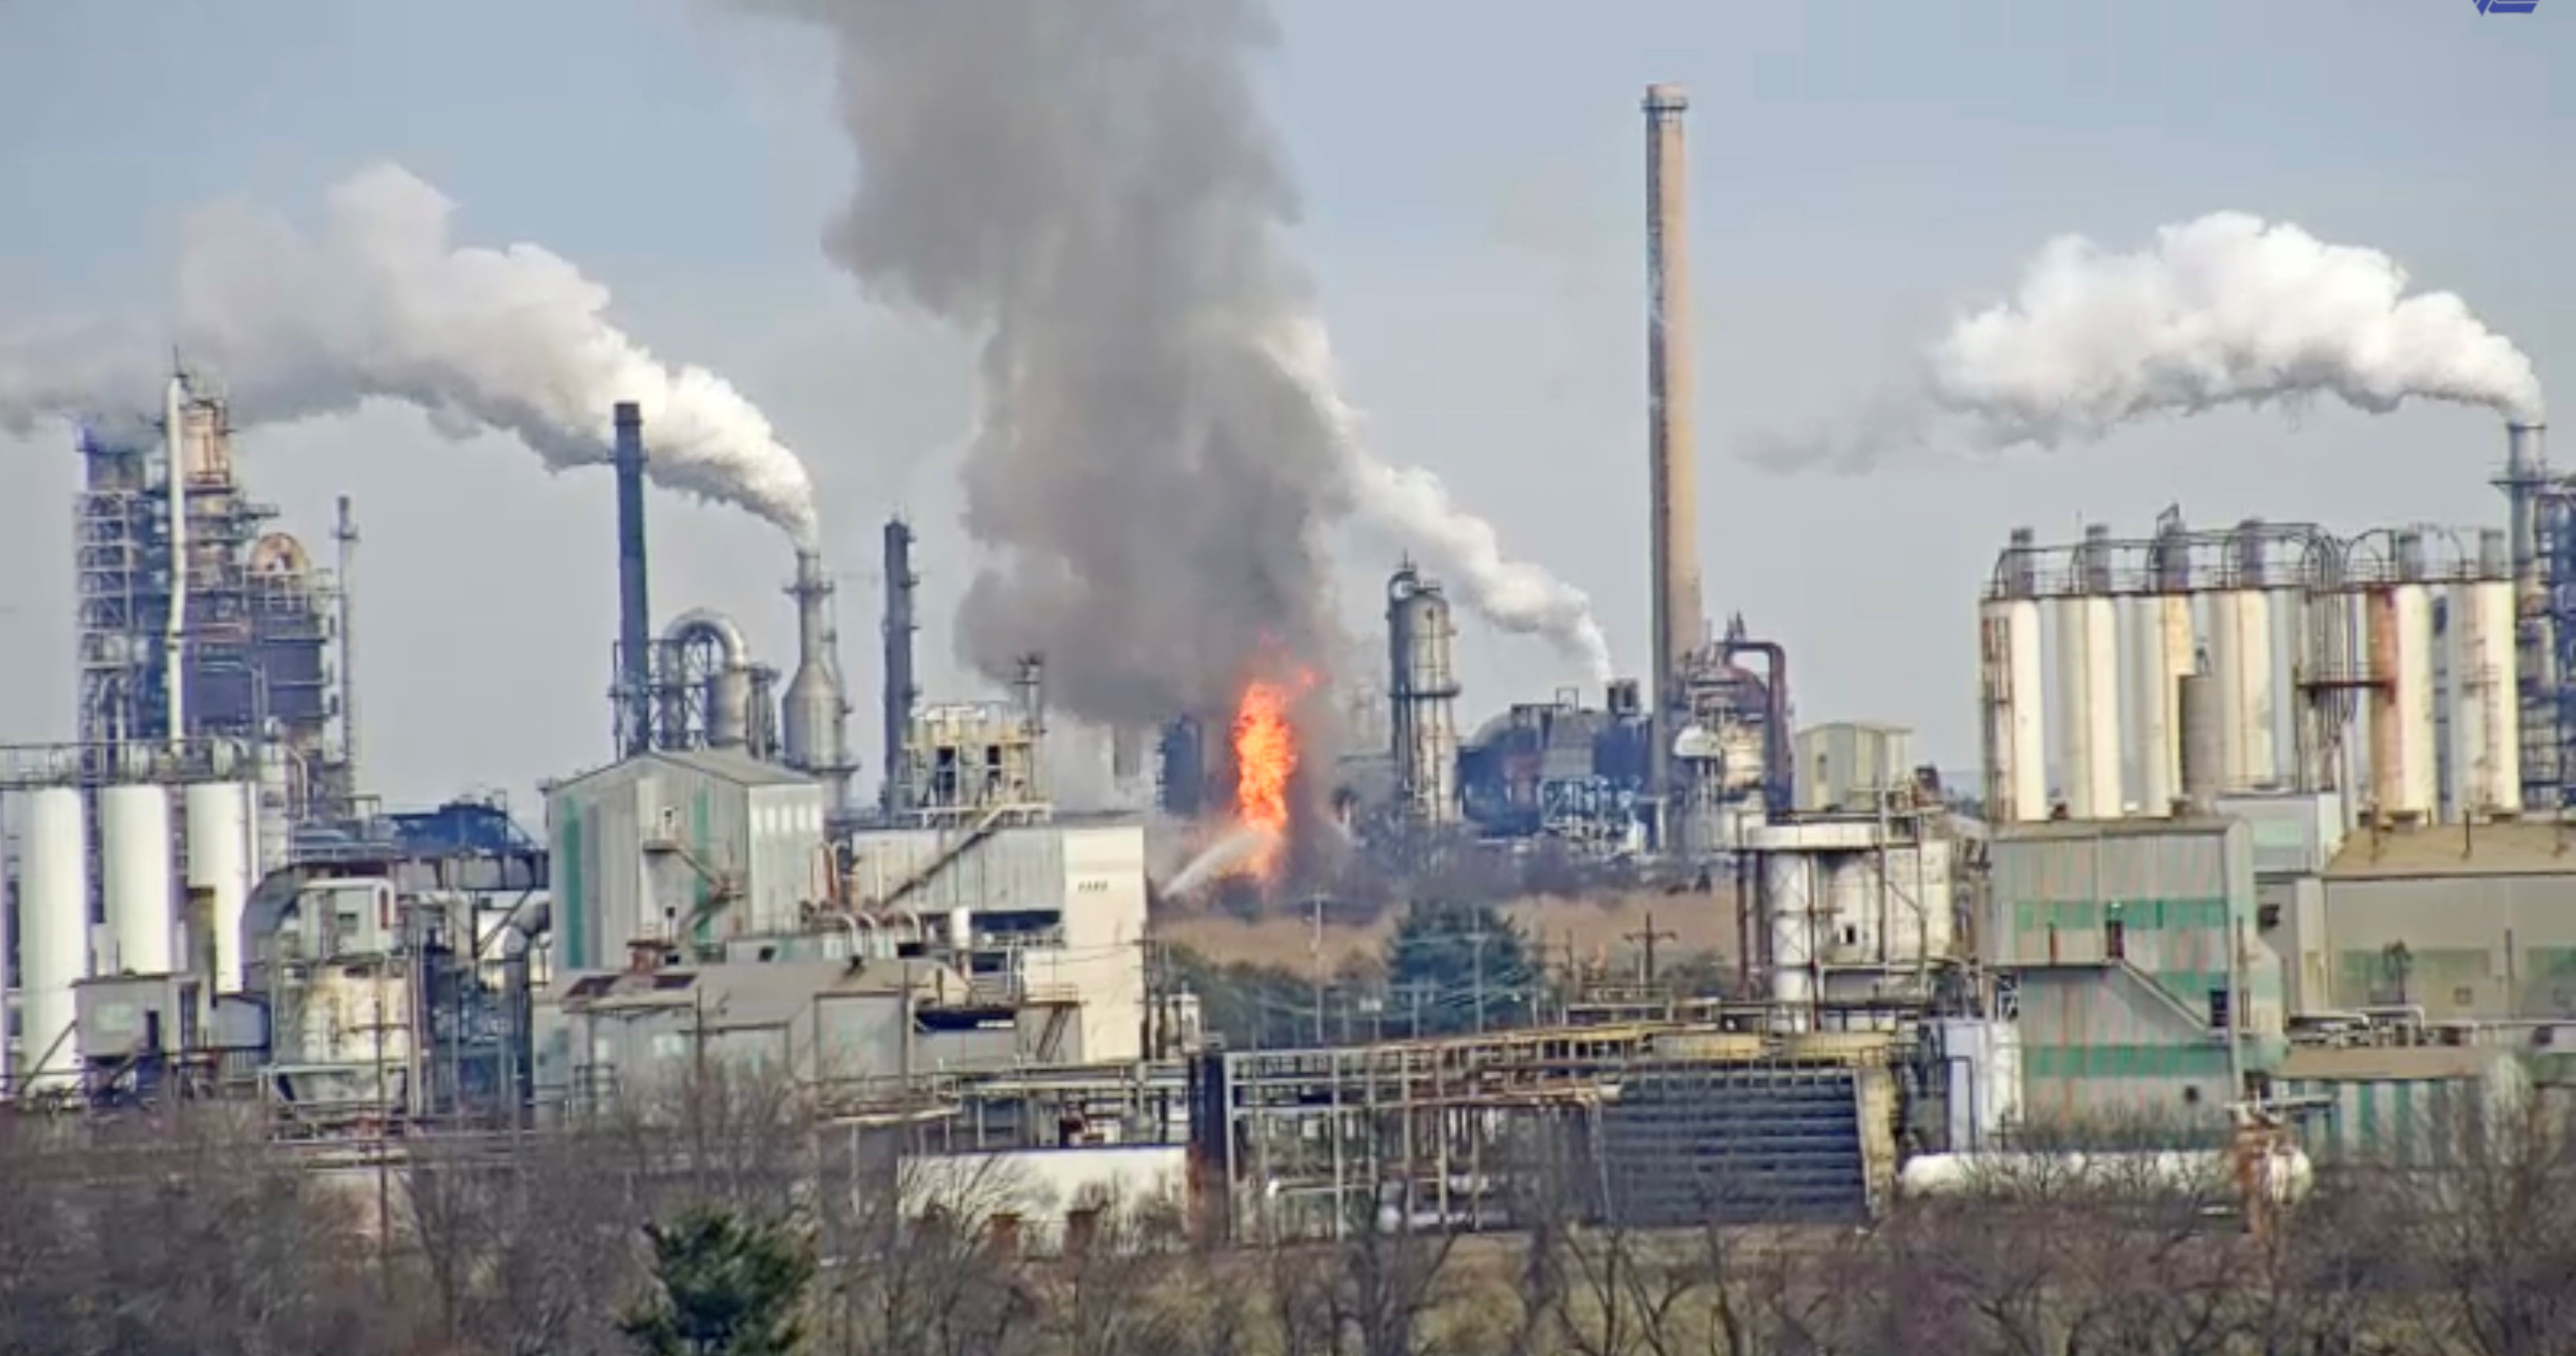 Fire crews battle flames at PBF Energy Inc's 175,000 barrel-per-day crude unit at its Delaware City, Delaware refinery in this still image taken from Delaware Department of Transportation traffic camera video in Delaware City, Delaware, U.S. February 3, 2019.   Delaware DOT/Handout via REUTERS